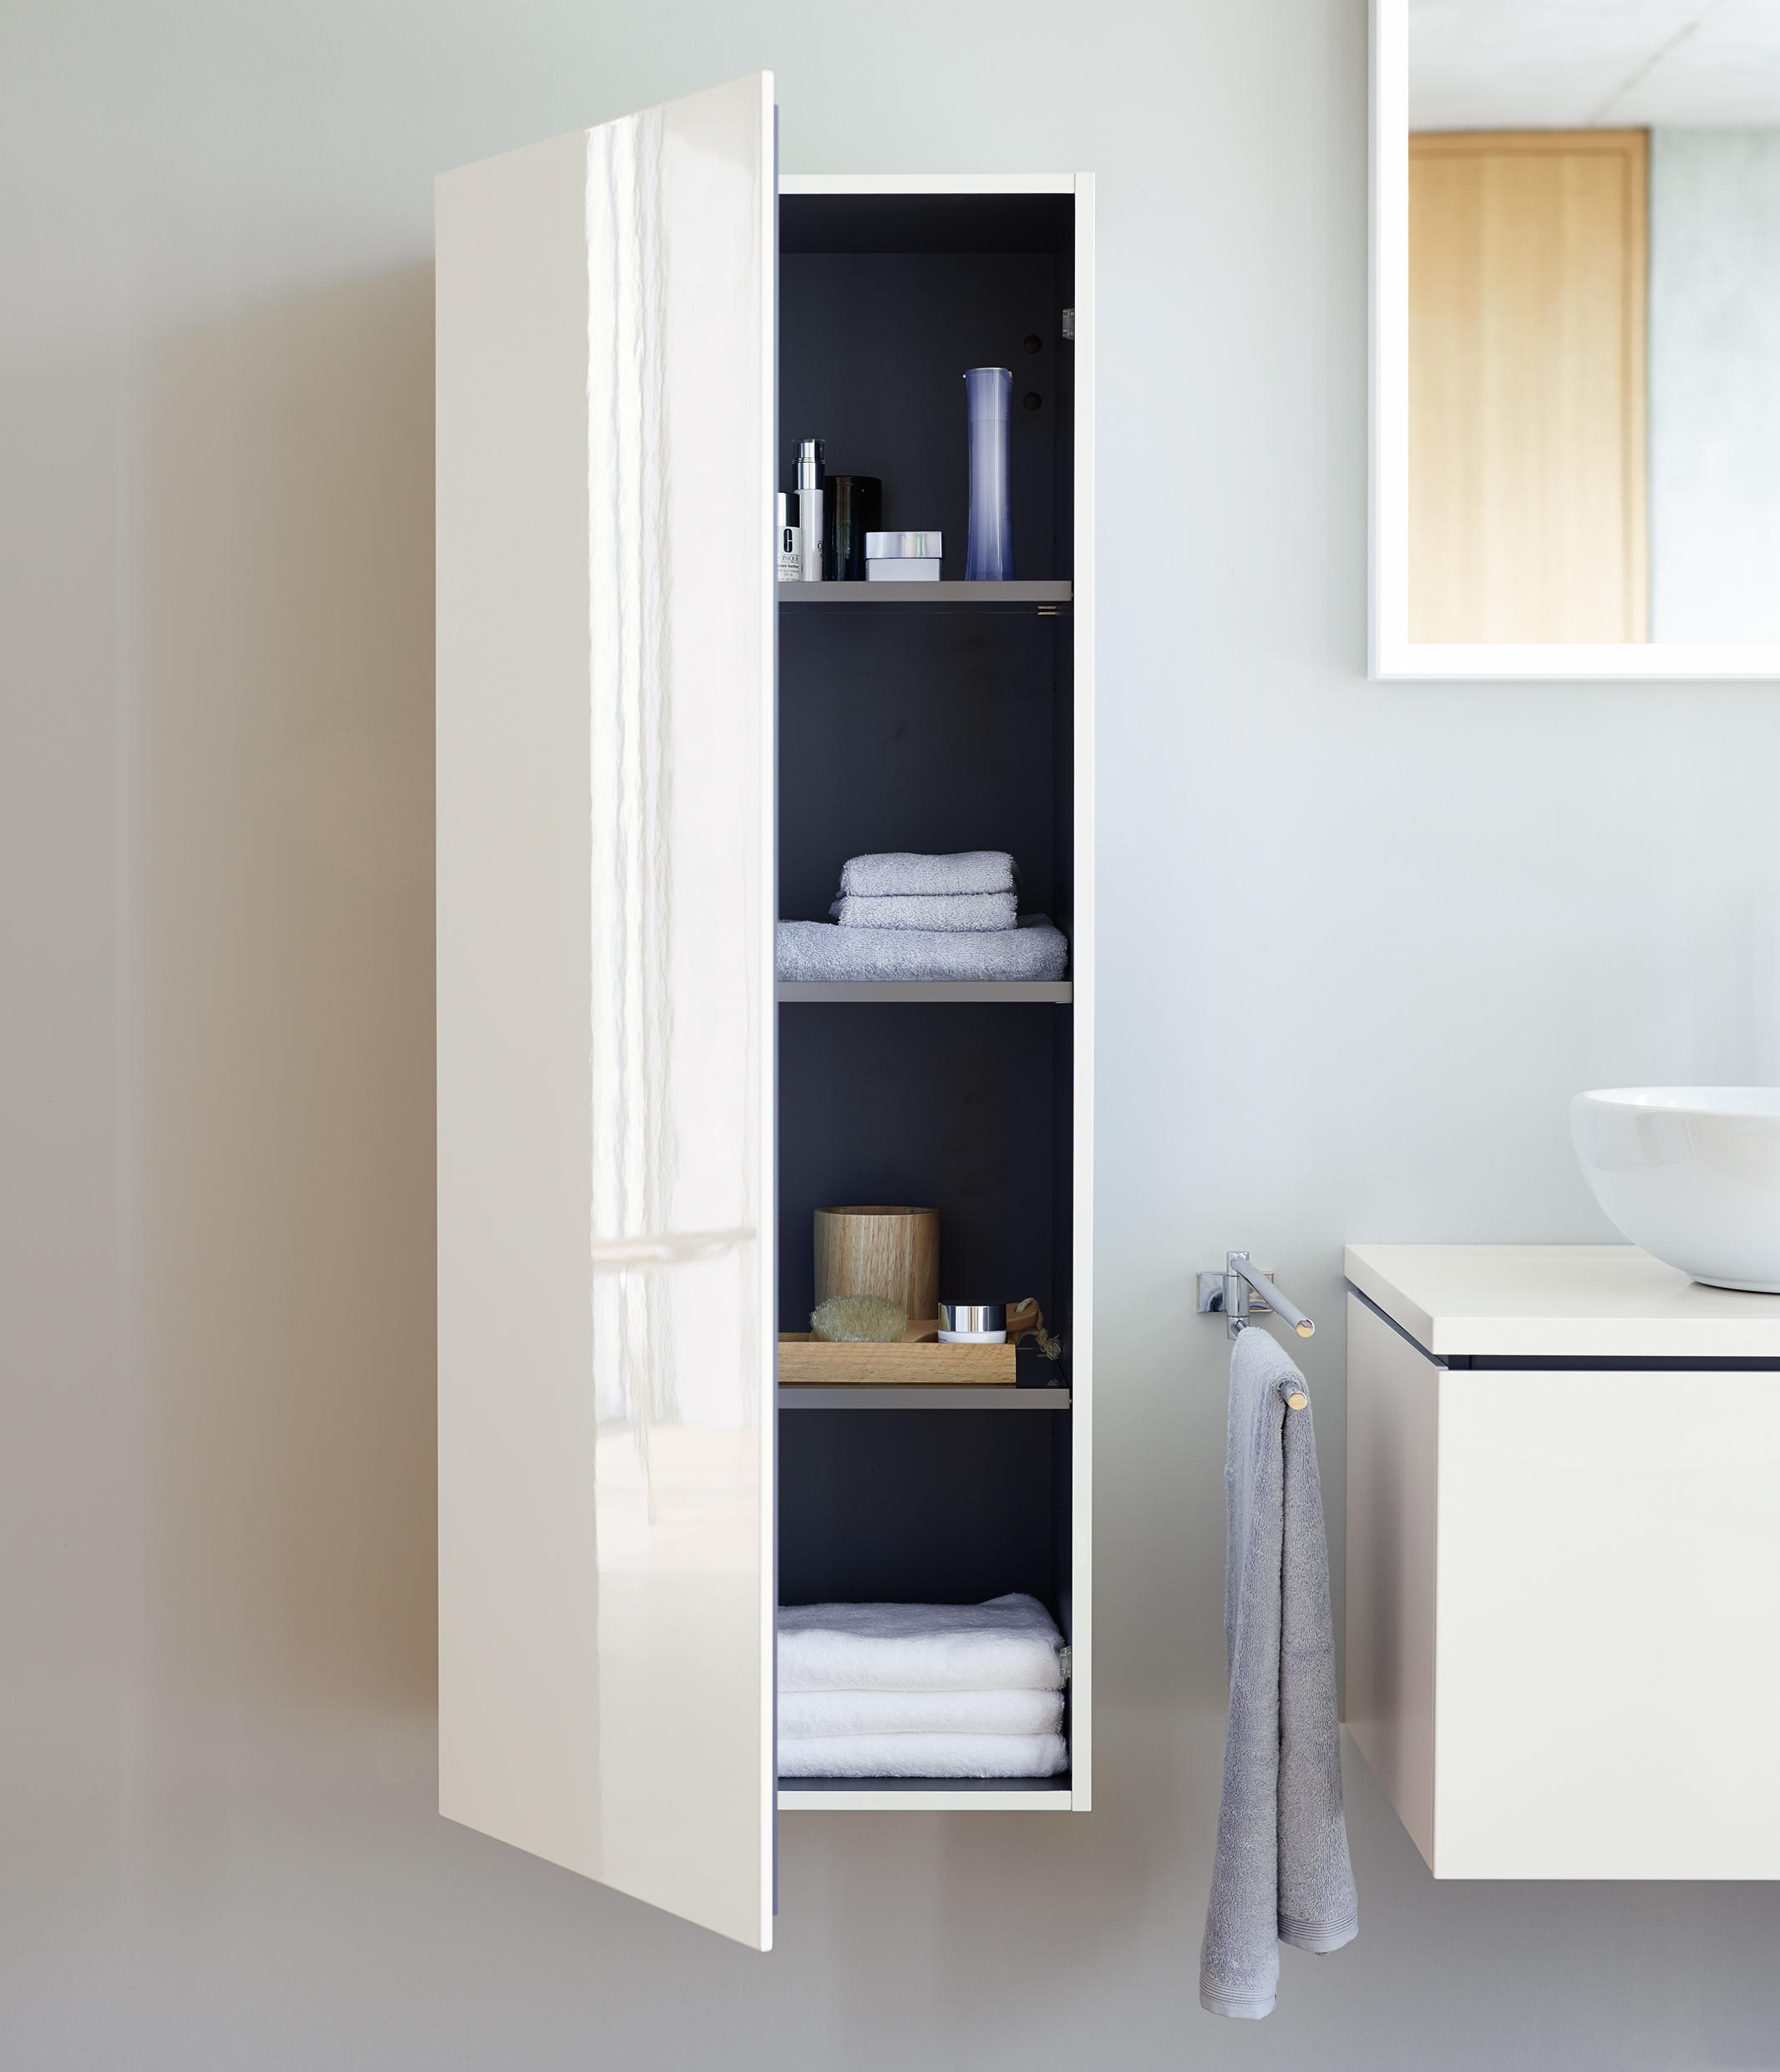 l cube badschrank wandschr nke von duravit architonic. Black Bedroom Furniture Sets. Home Design Ideas